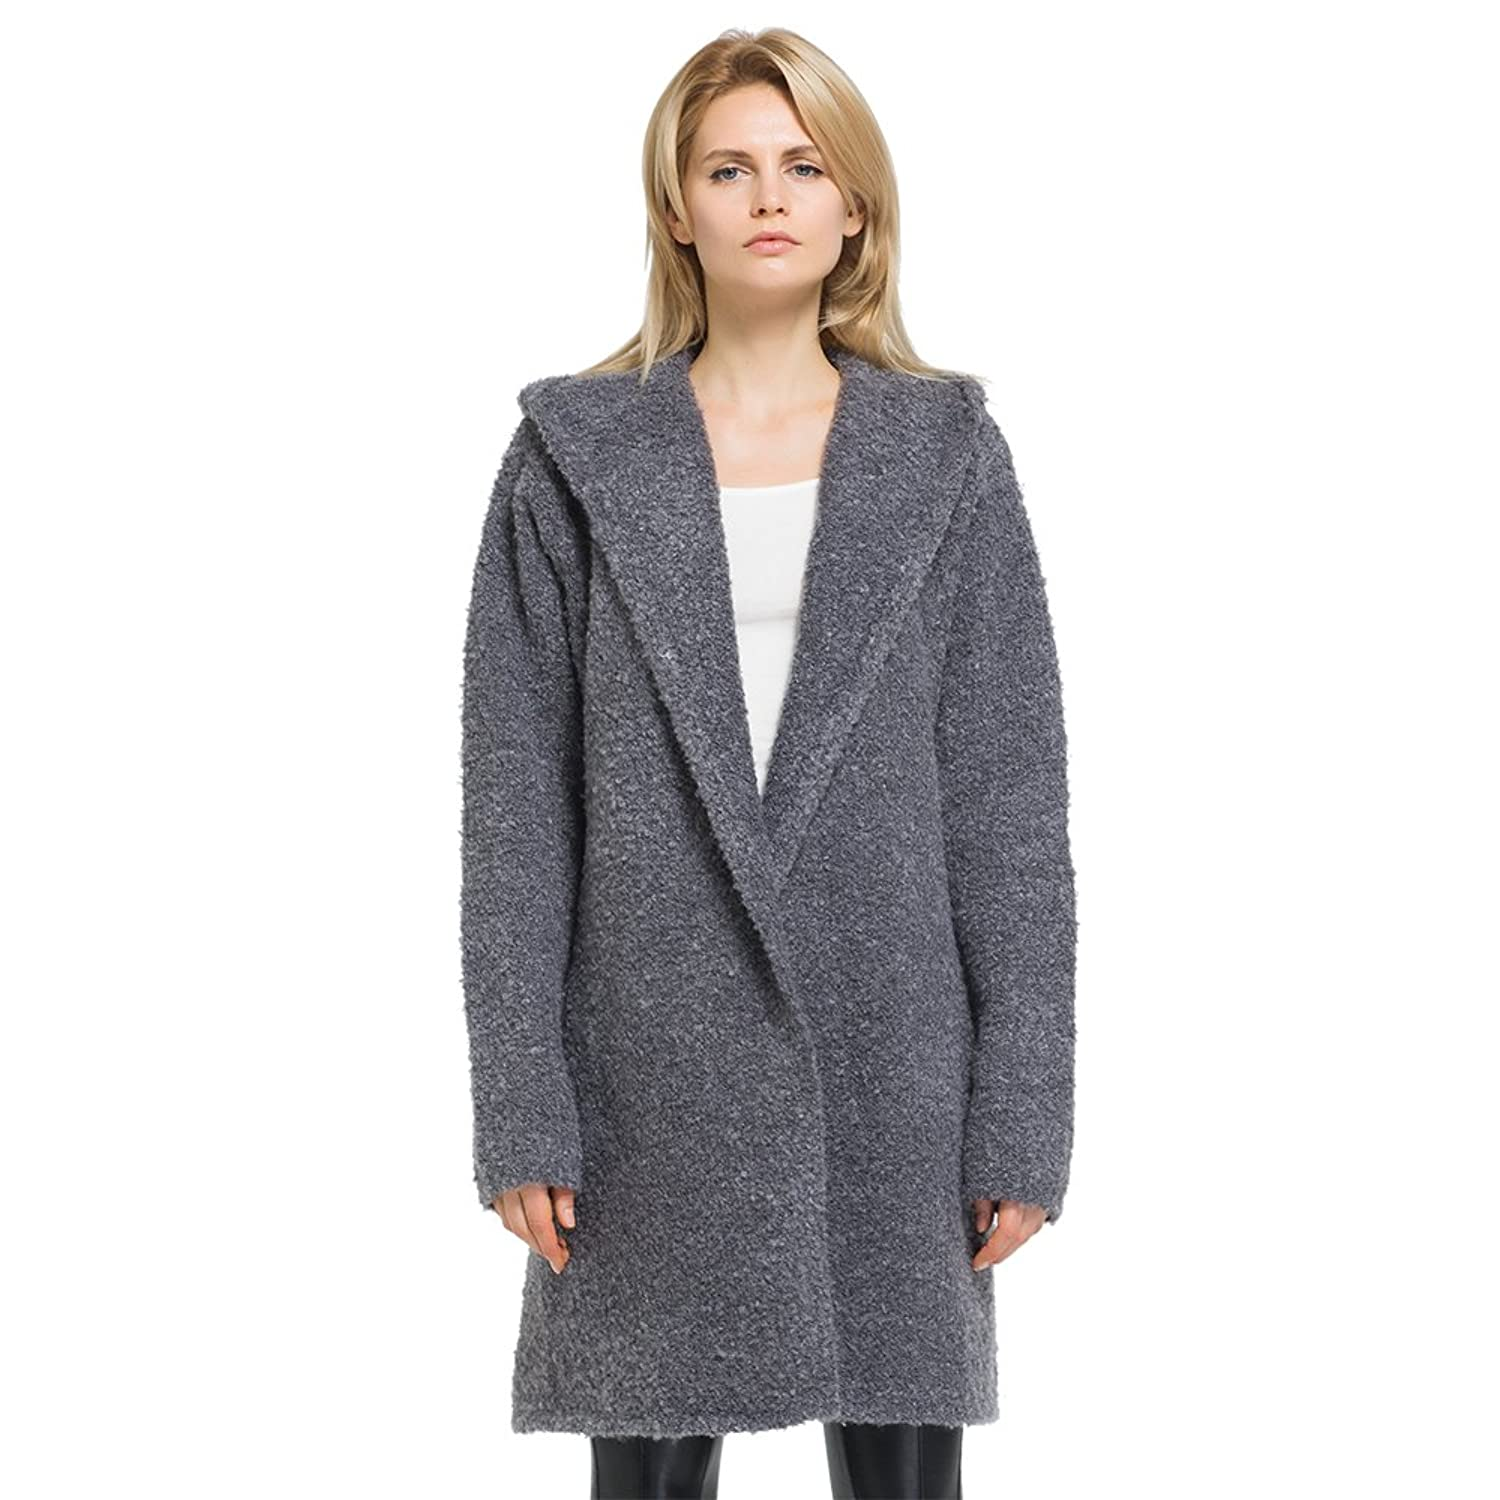 WEN TING Women's Plus Size Lapel Knitted Cardigan Sweater with Hoodies